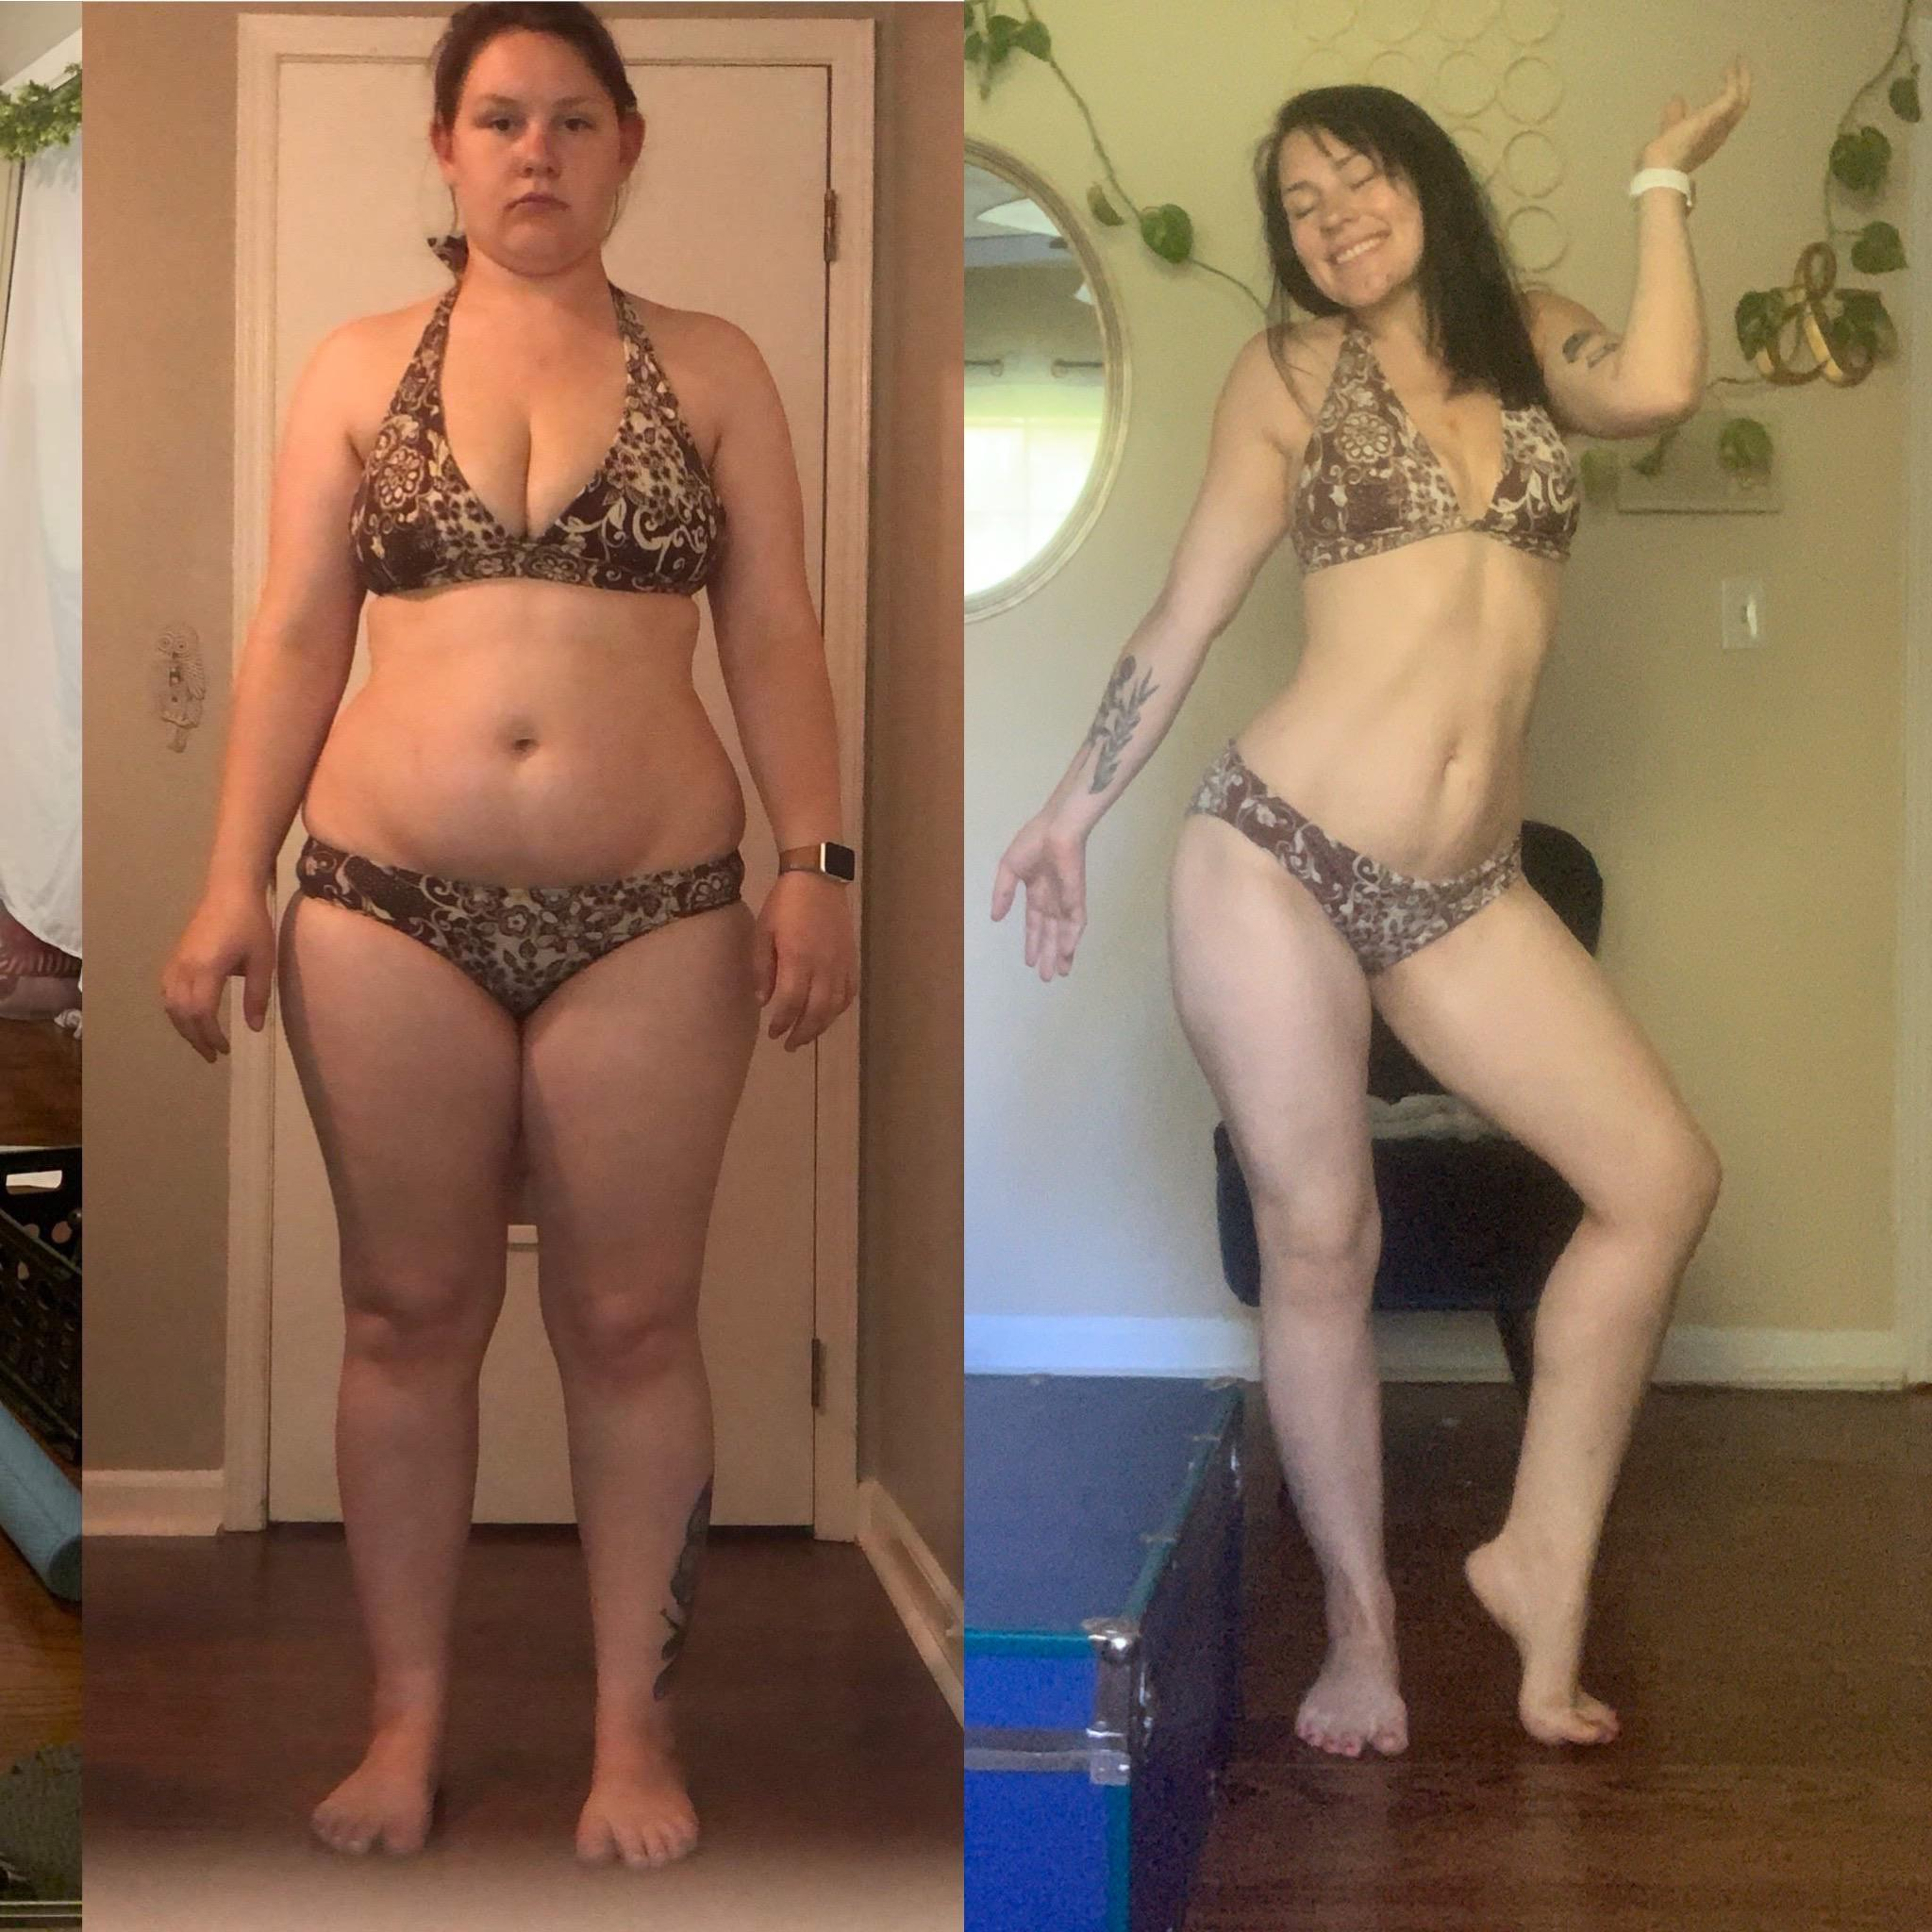 Before and After 85 lbs Fat Loss 5'3 Female 220 lbs to 135 lbs